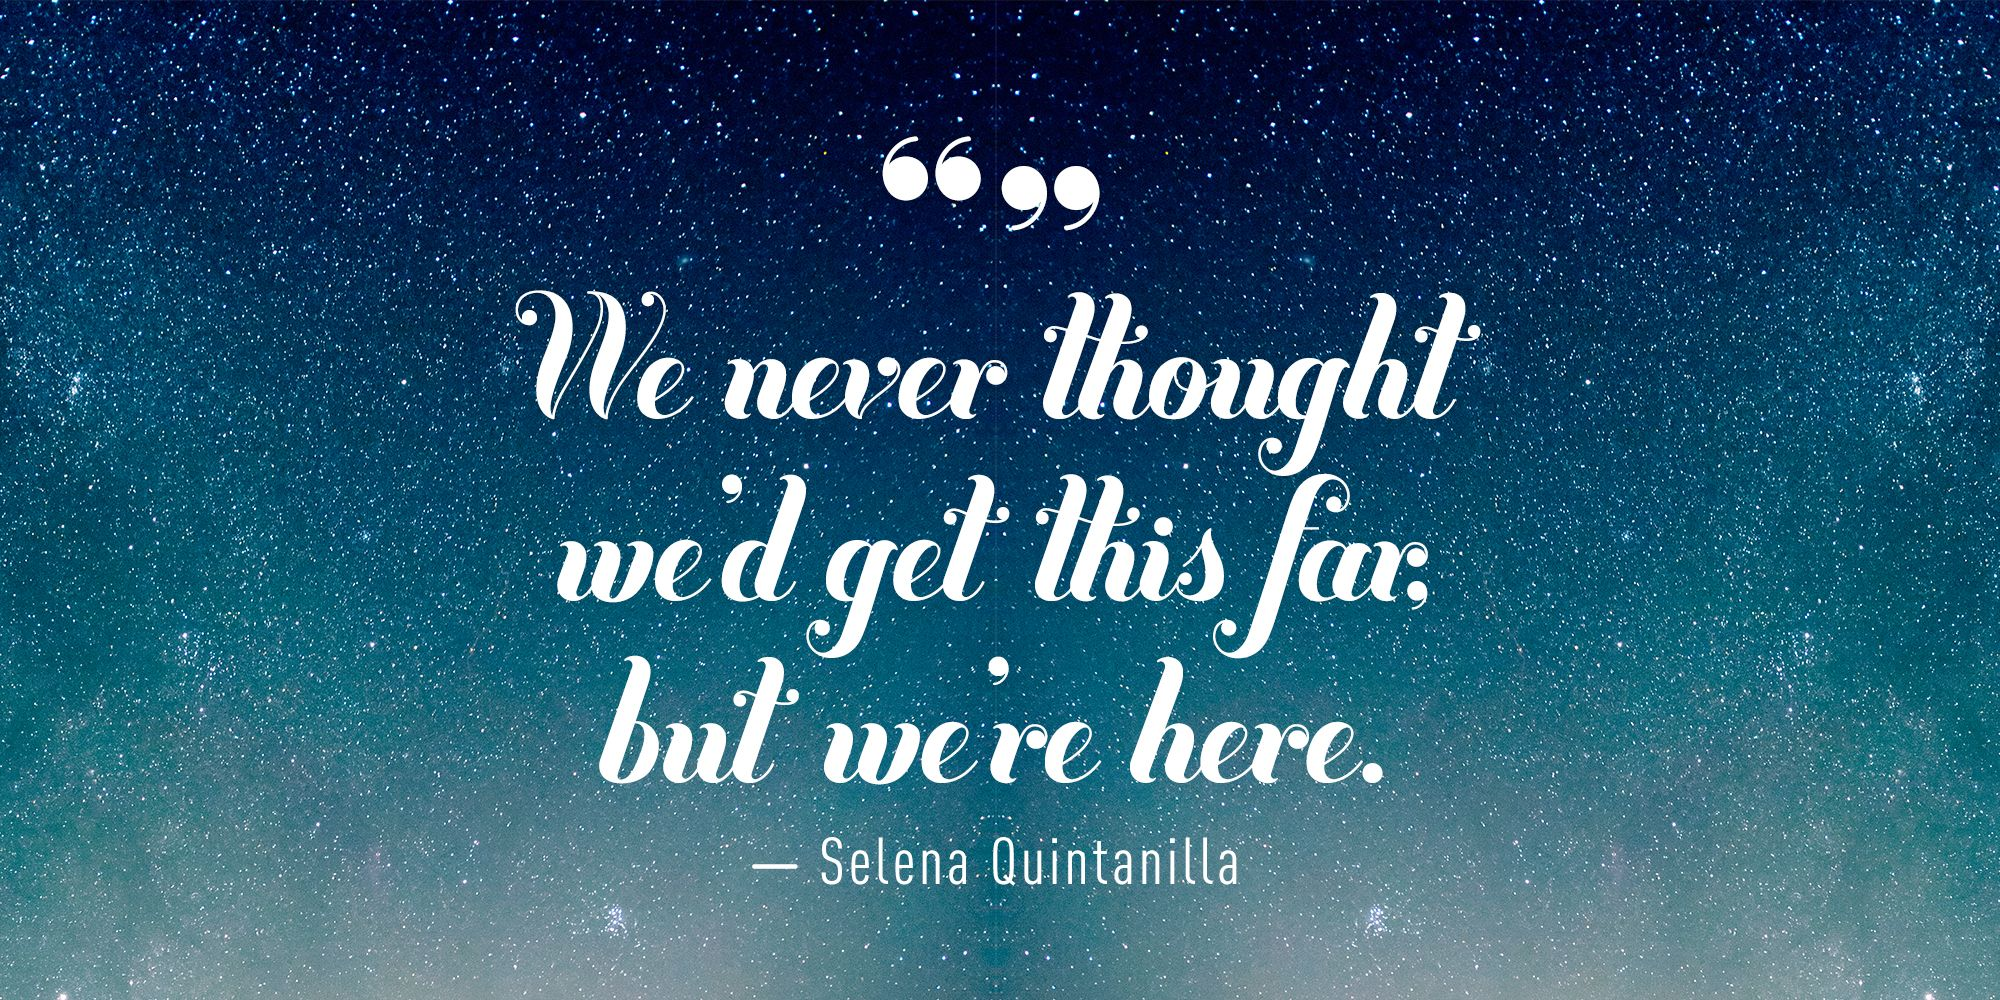 Famous Spanish Quotes 17 Famous Selena Quintanilla Quotes